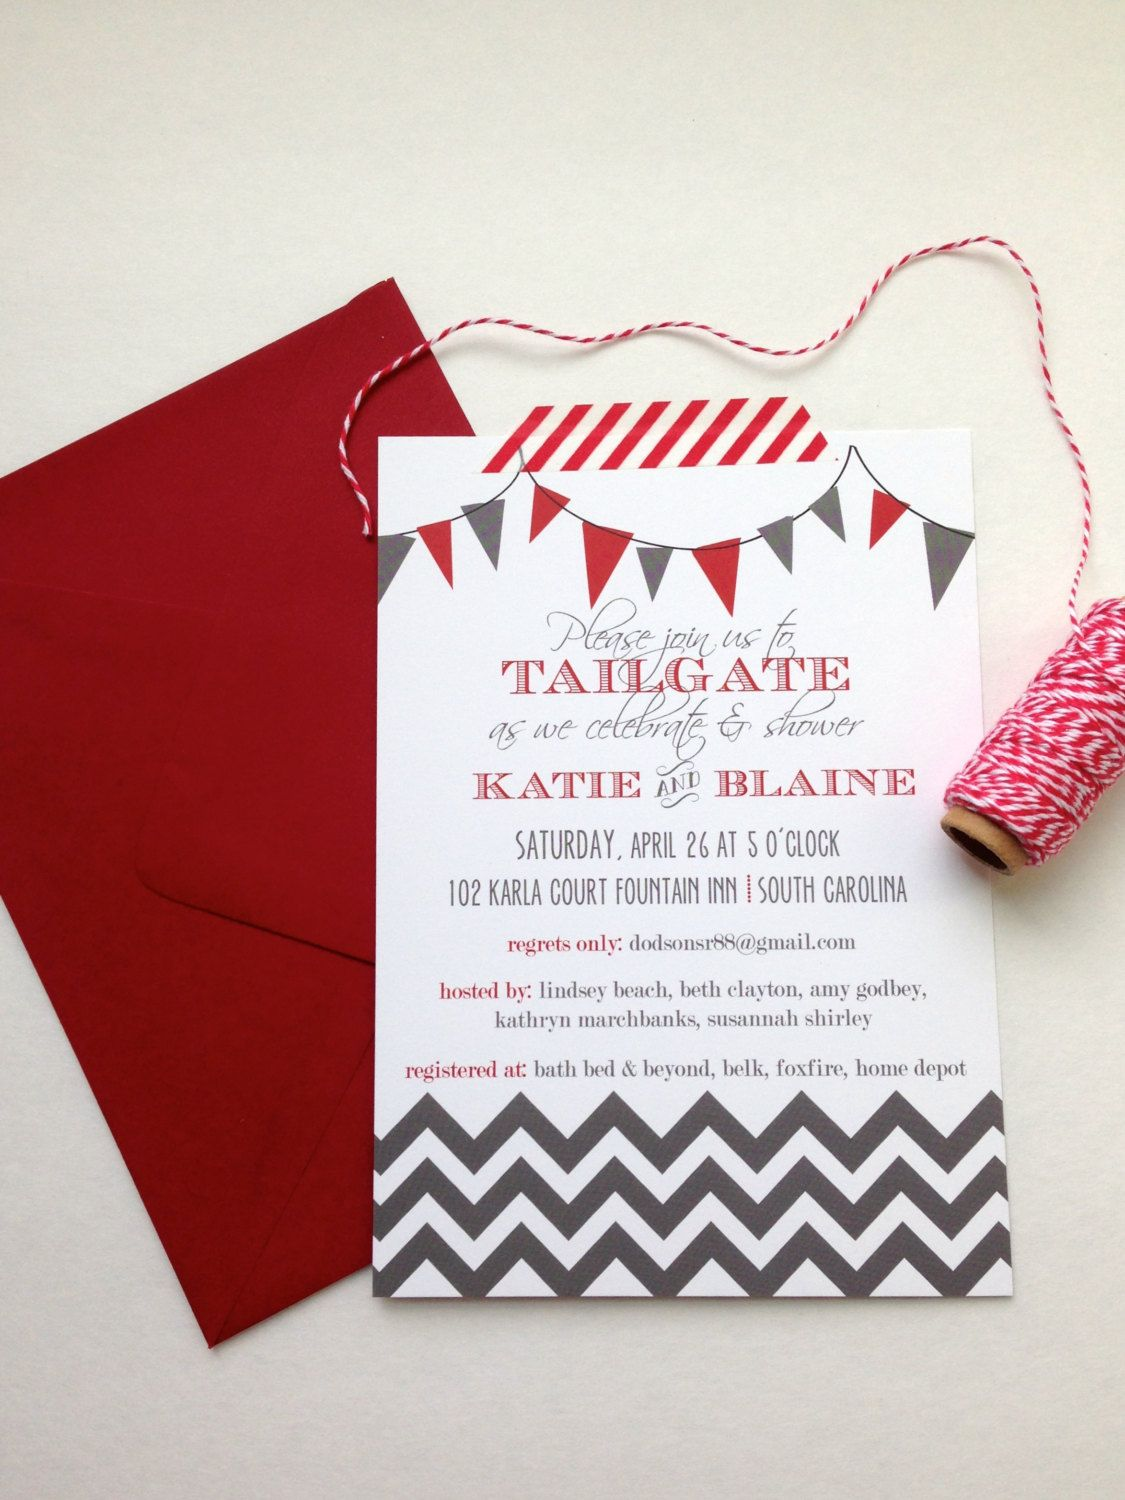 Tailgating Couples Shower Invitation by texasgirlsdesign on Etsy ...